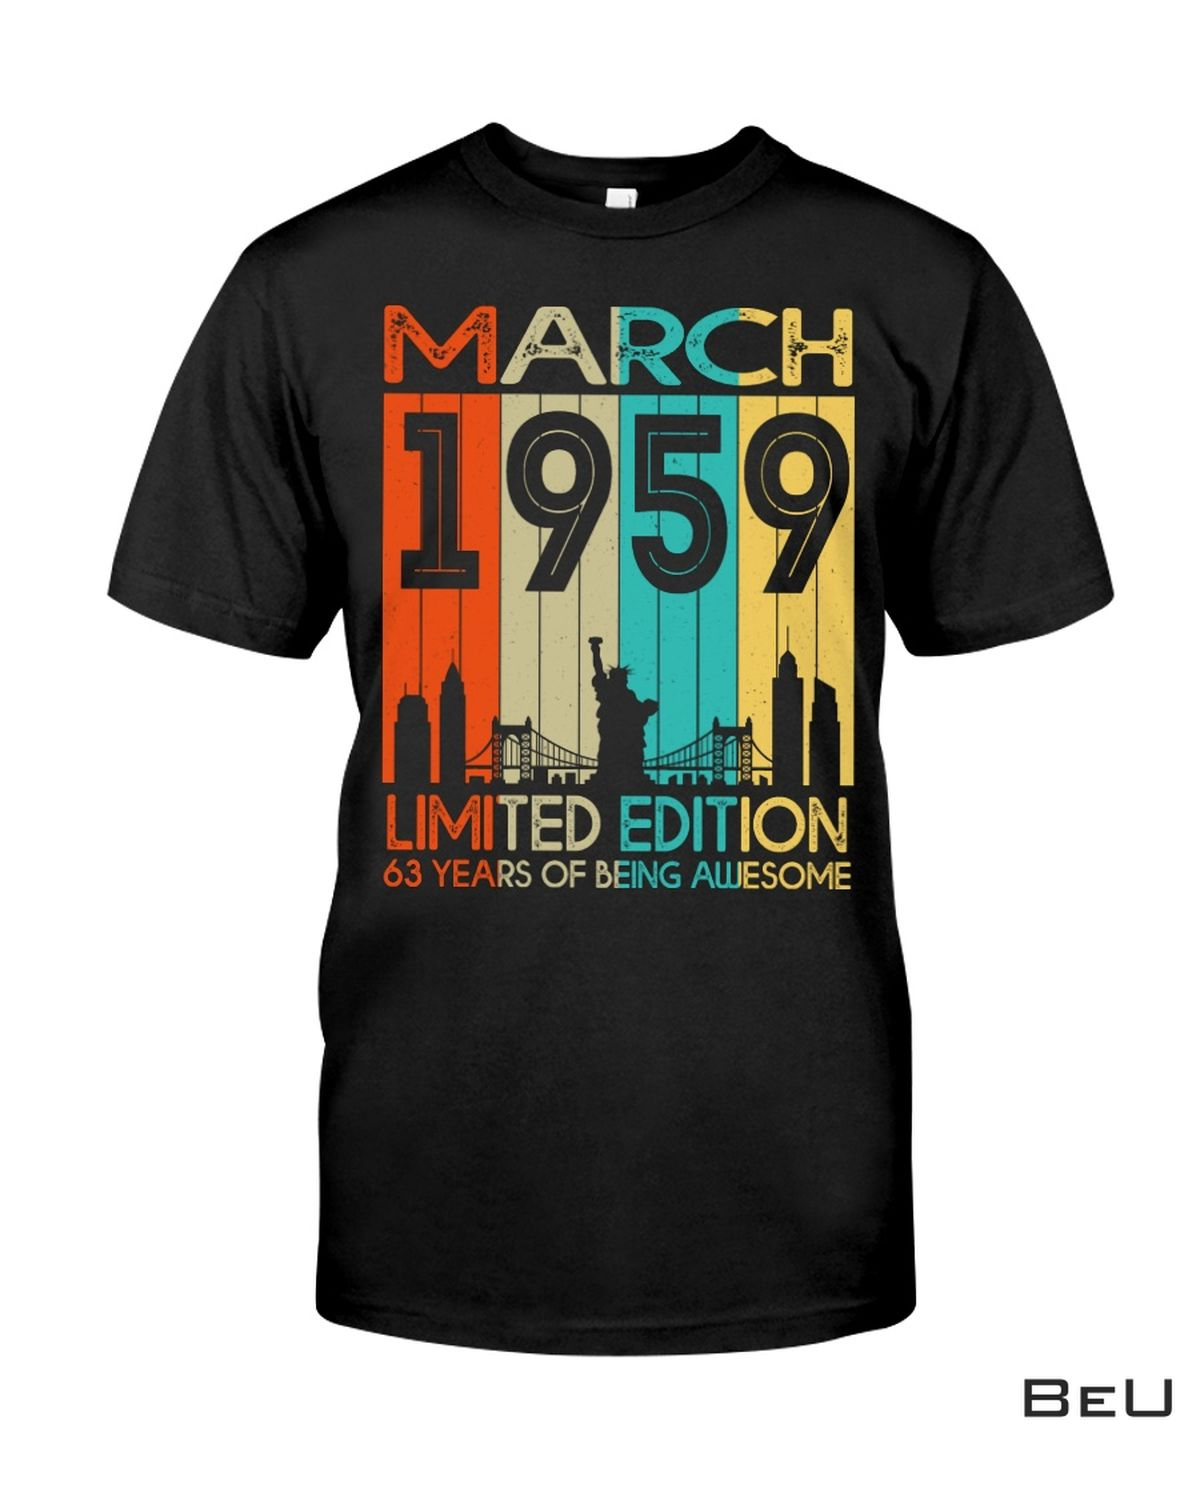 March 1959 Limited Edition 63 Years Of Being Awesome Shirt, hoodie, tank top